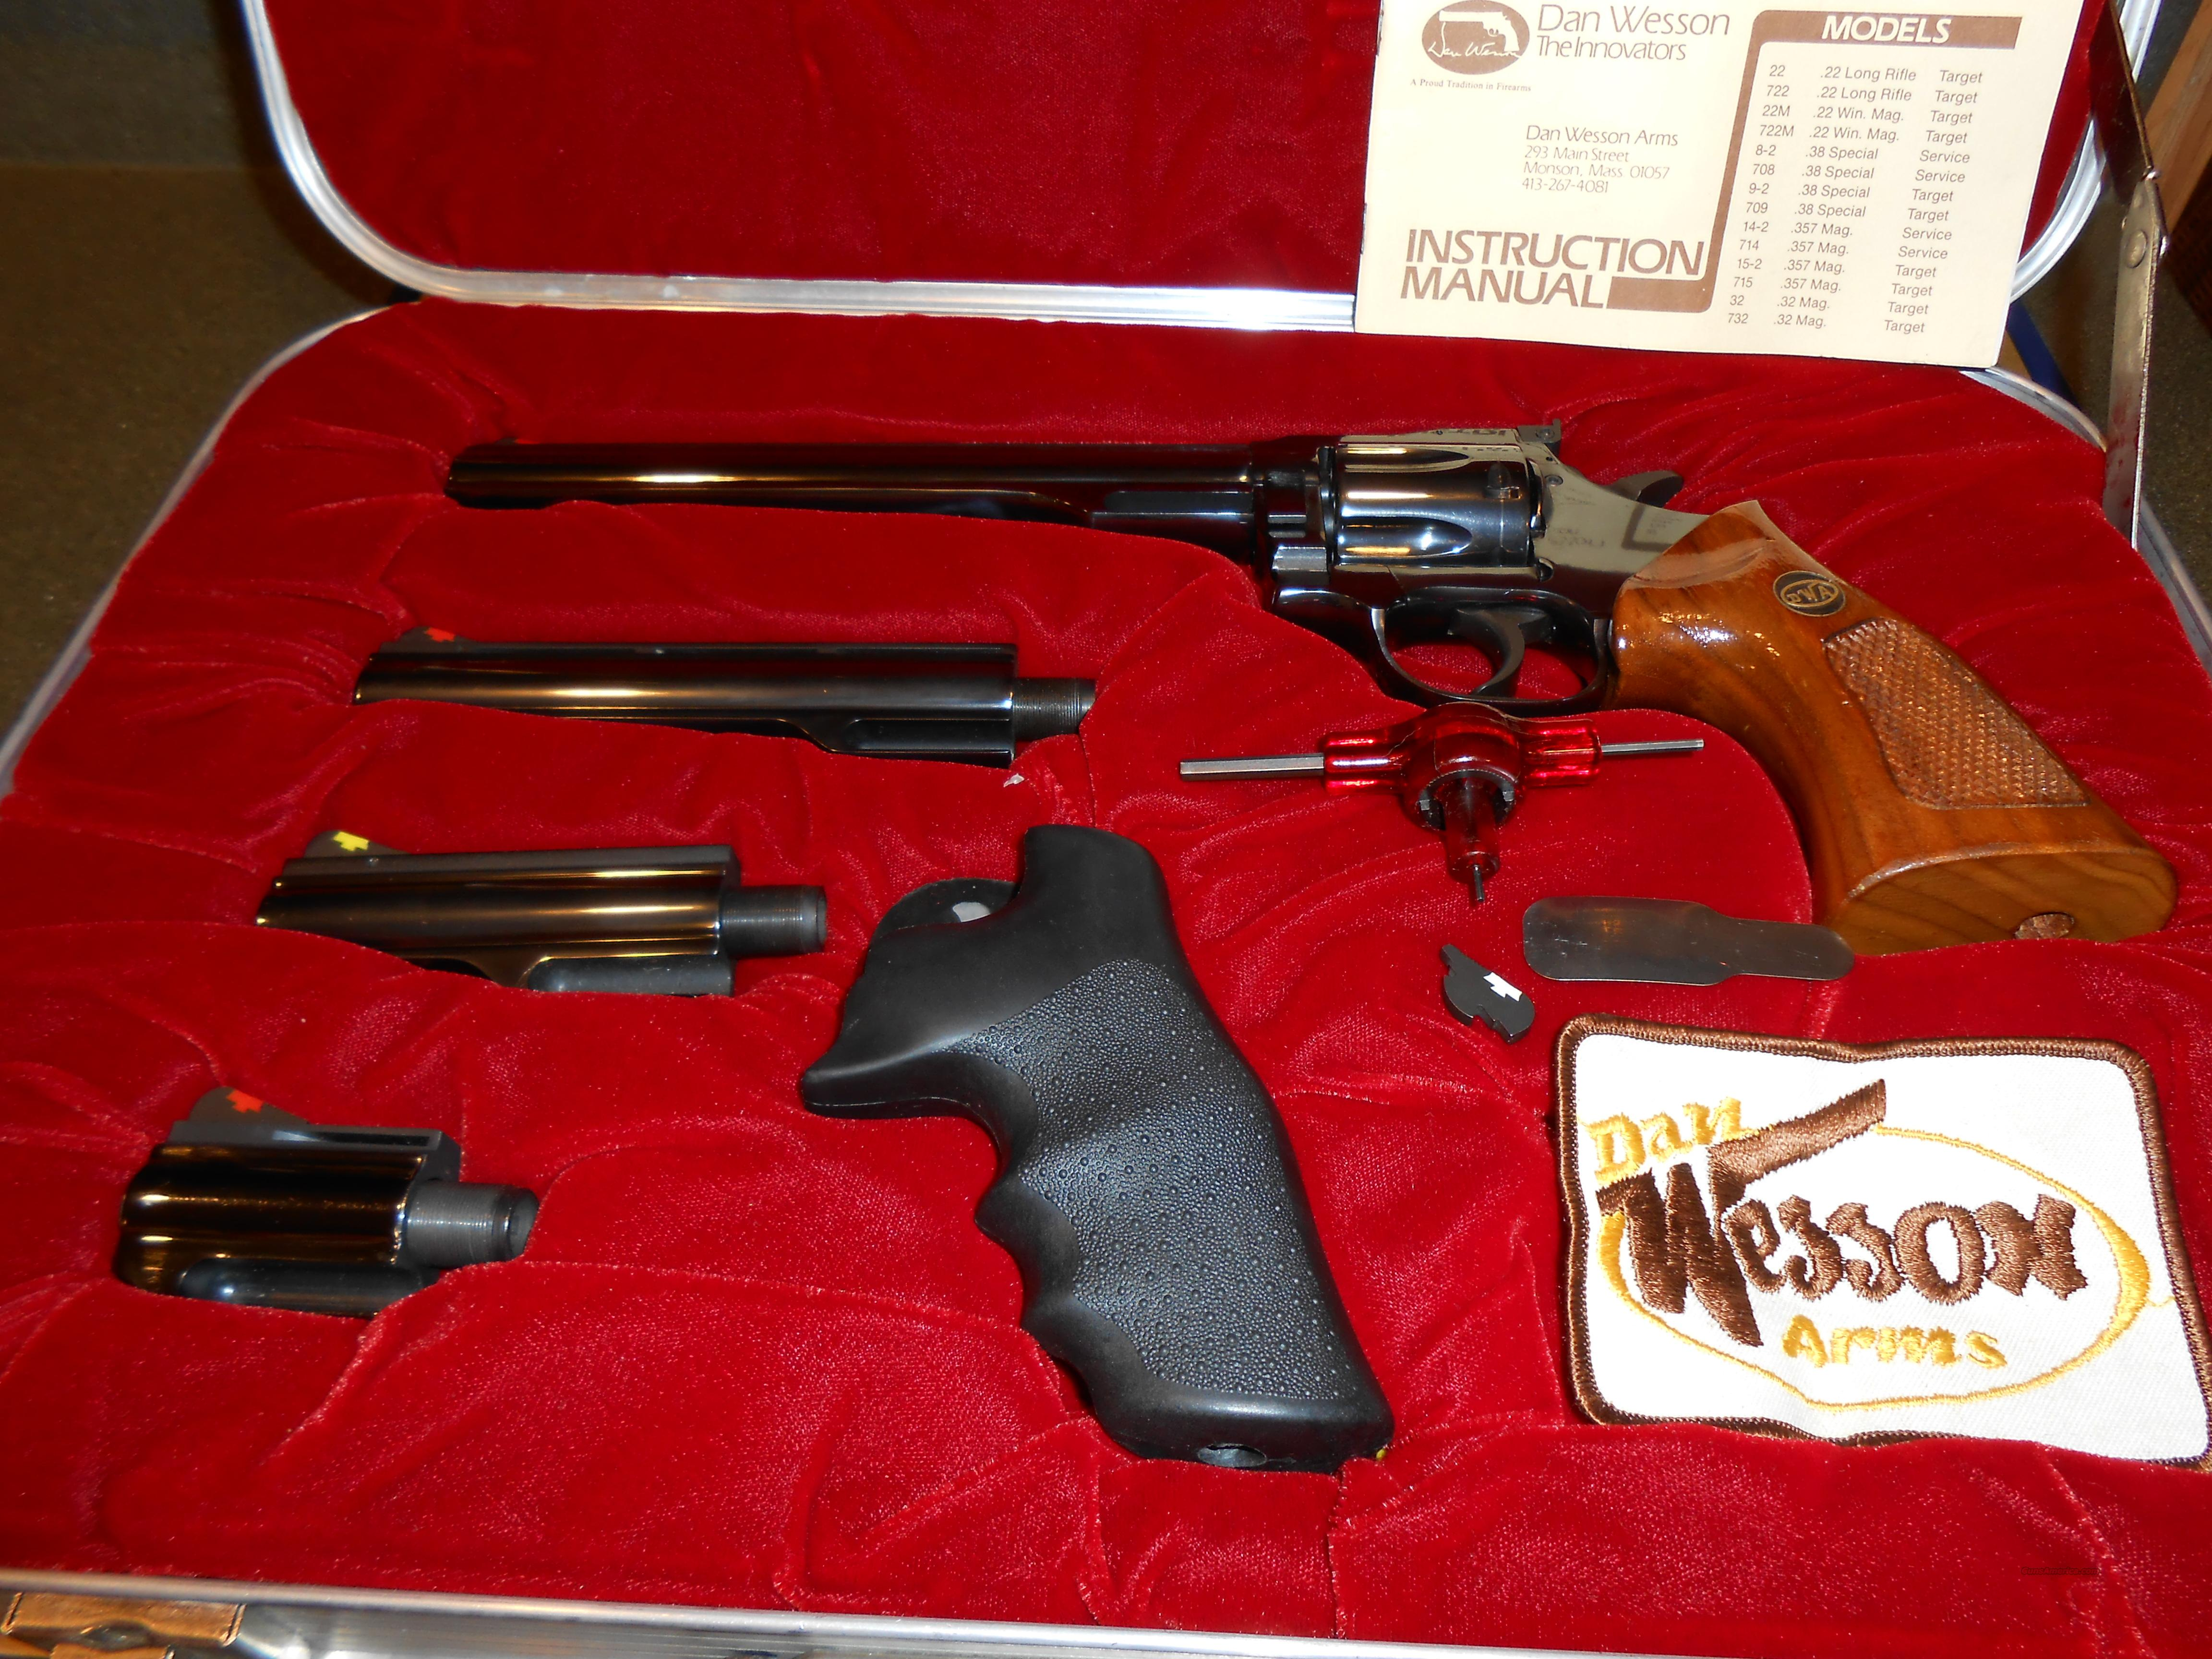 Pistol Pac Dan Wesson Unfired? Complete  Guns > Pistols > Dan Wesson Pistols/Revolvers > Revolvers